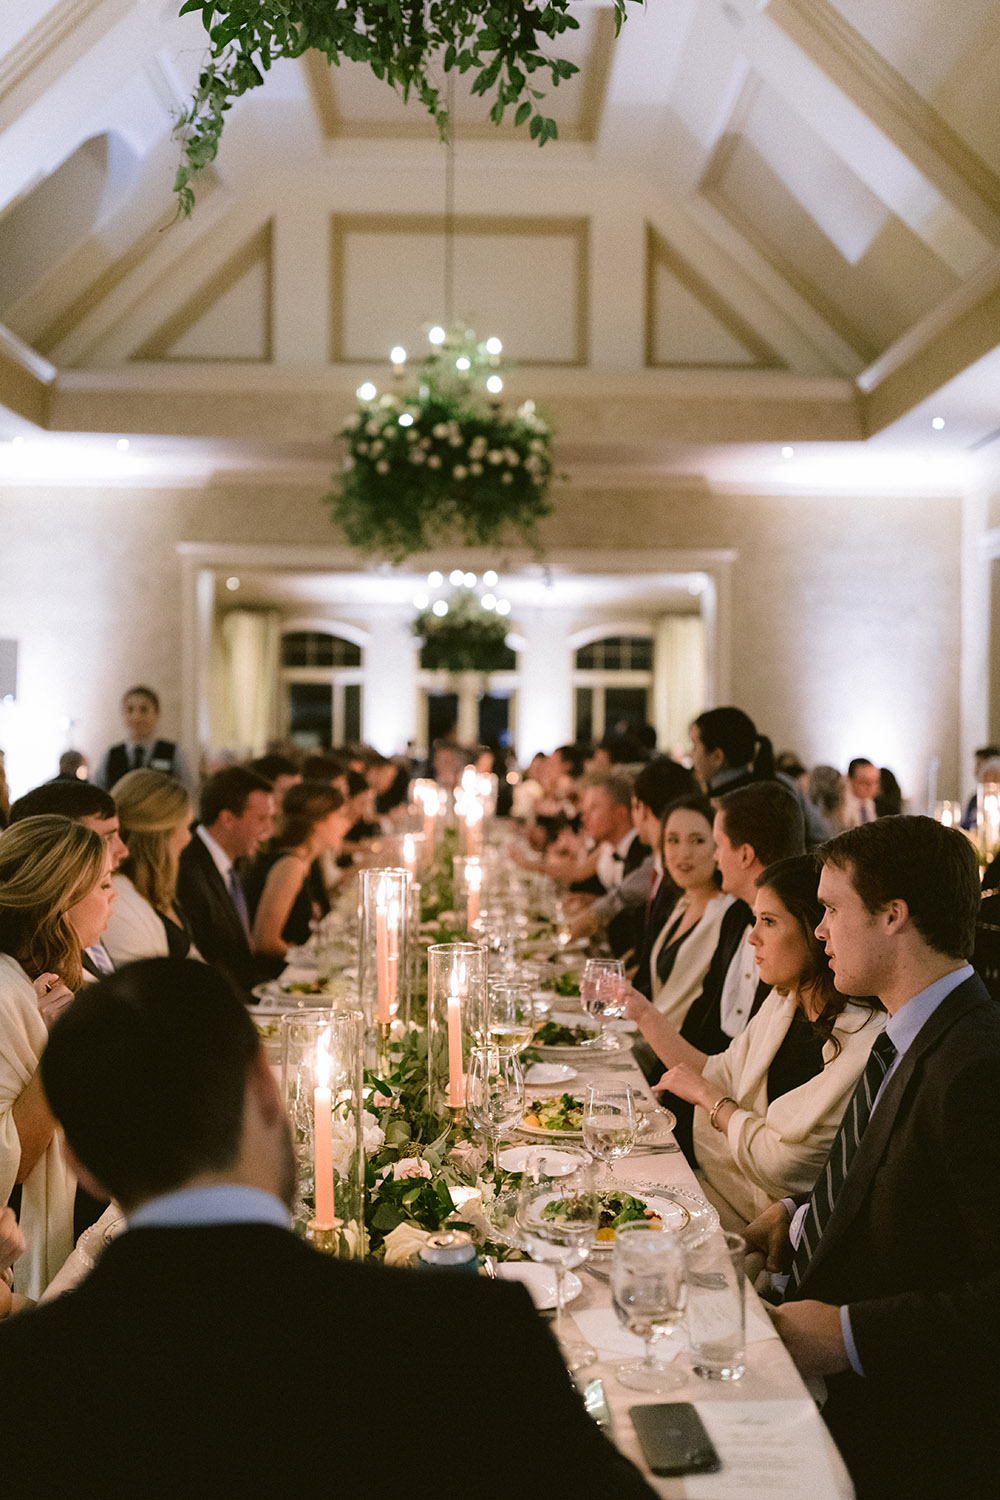 Guests seated at a long reception table, adorned with tall pink glowing candles and greenery.